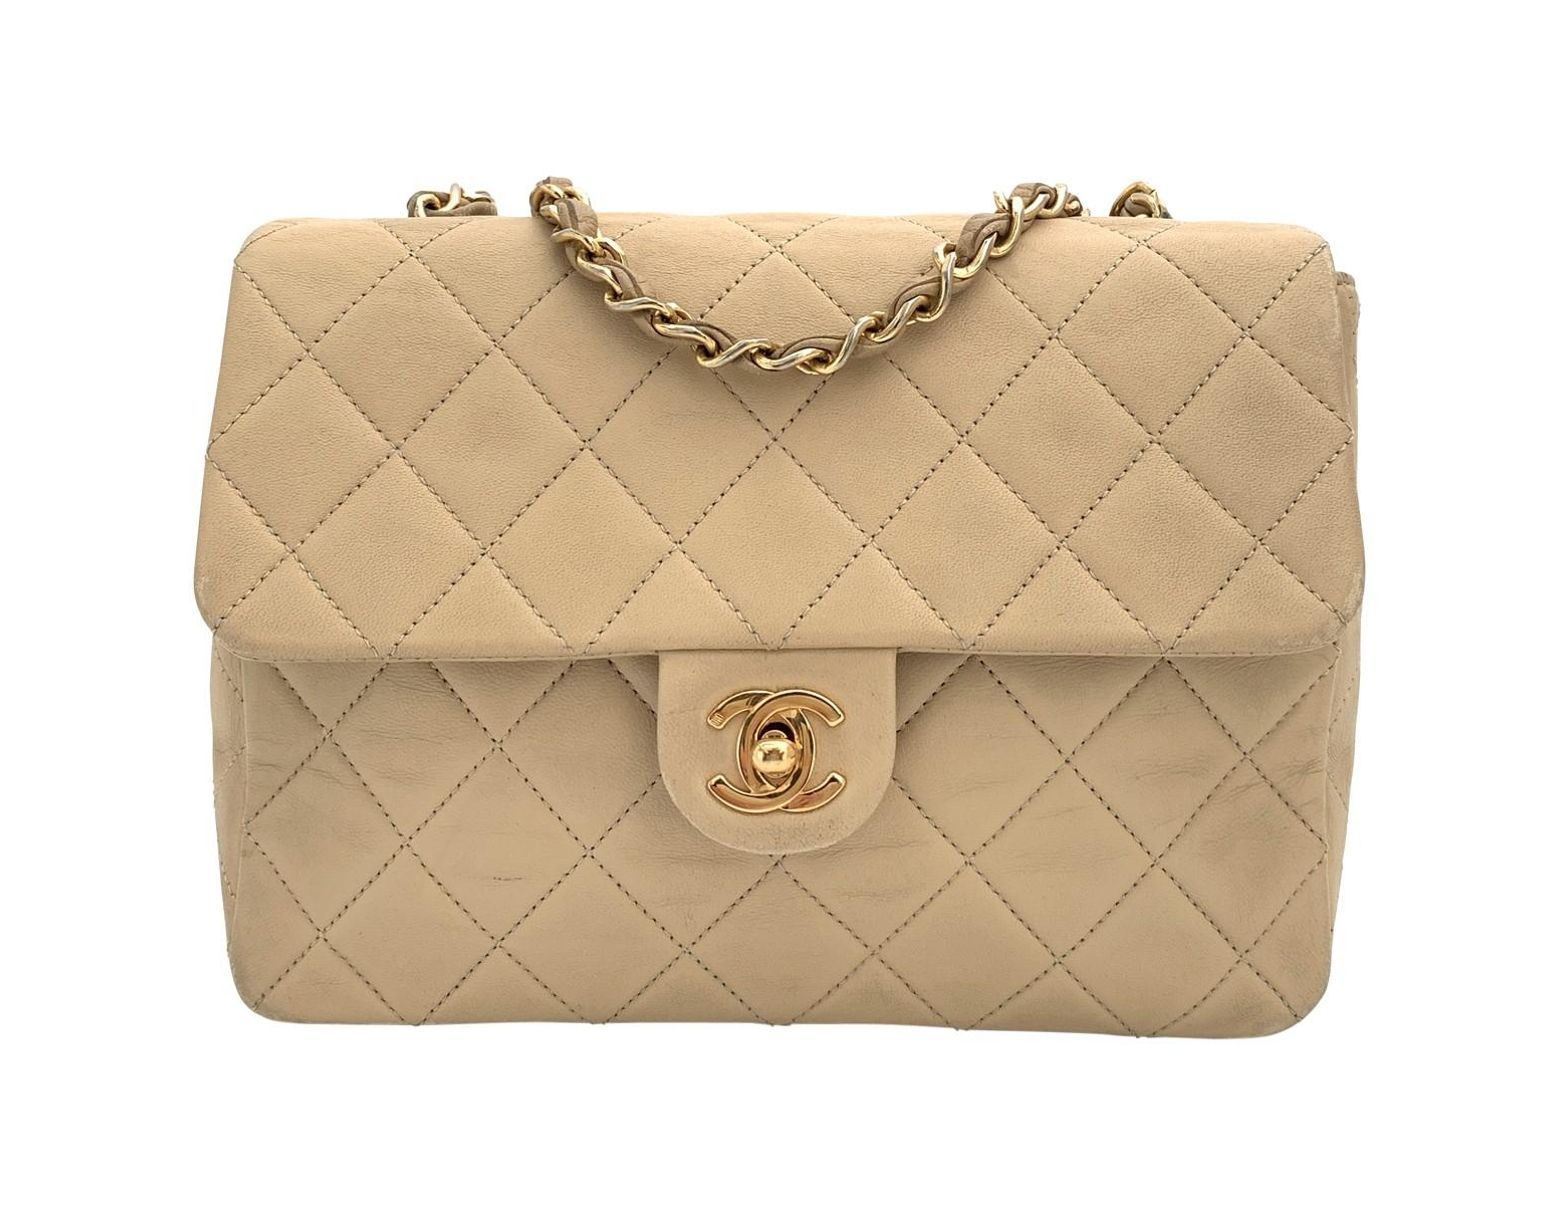 sac chanel vestiaire collective